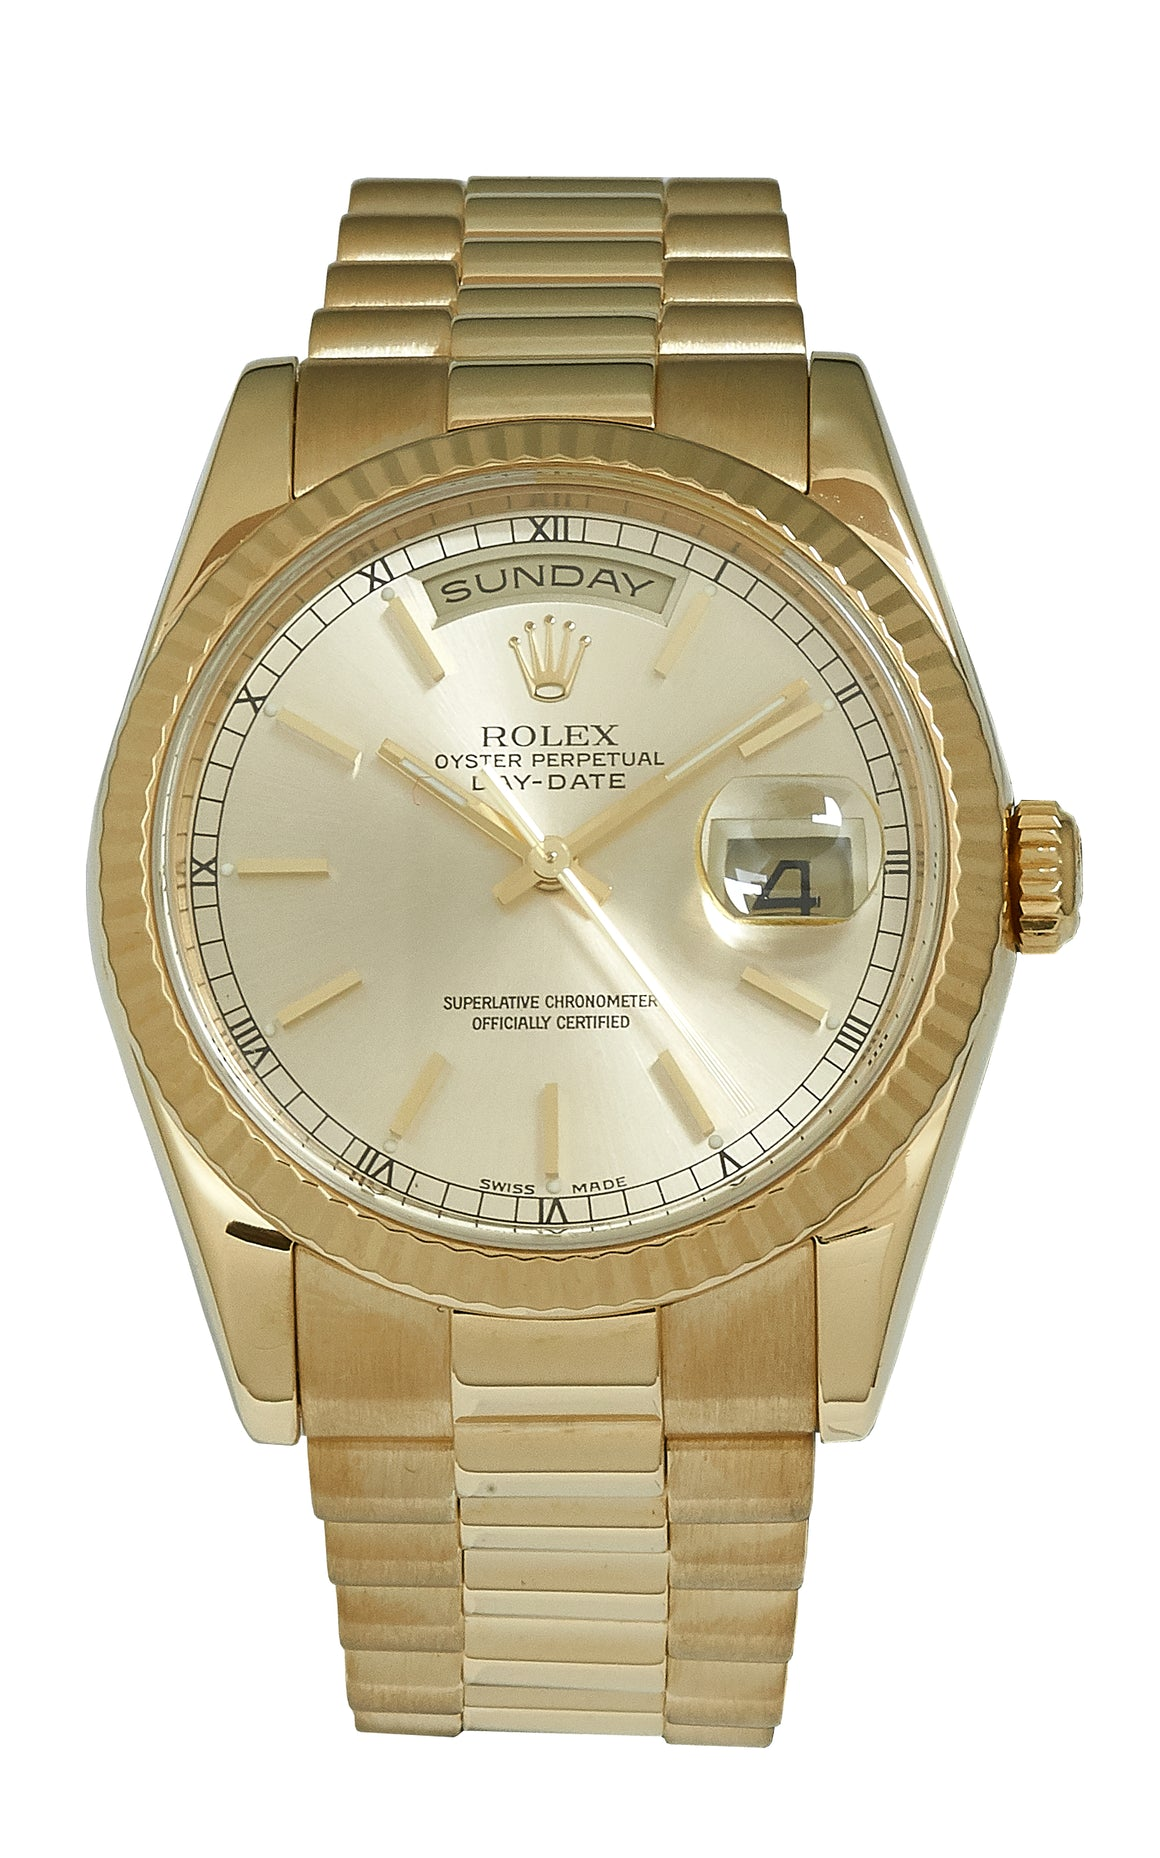 Rolex Yellow Gold Day-Date 36, Box & Papers (118238)